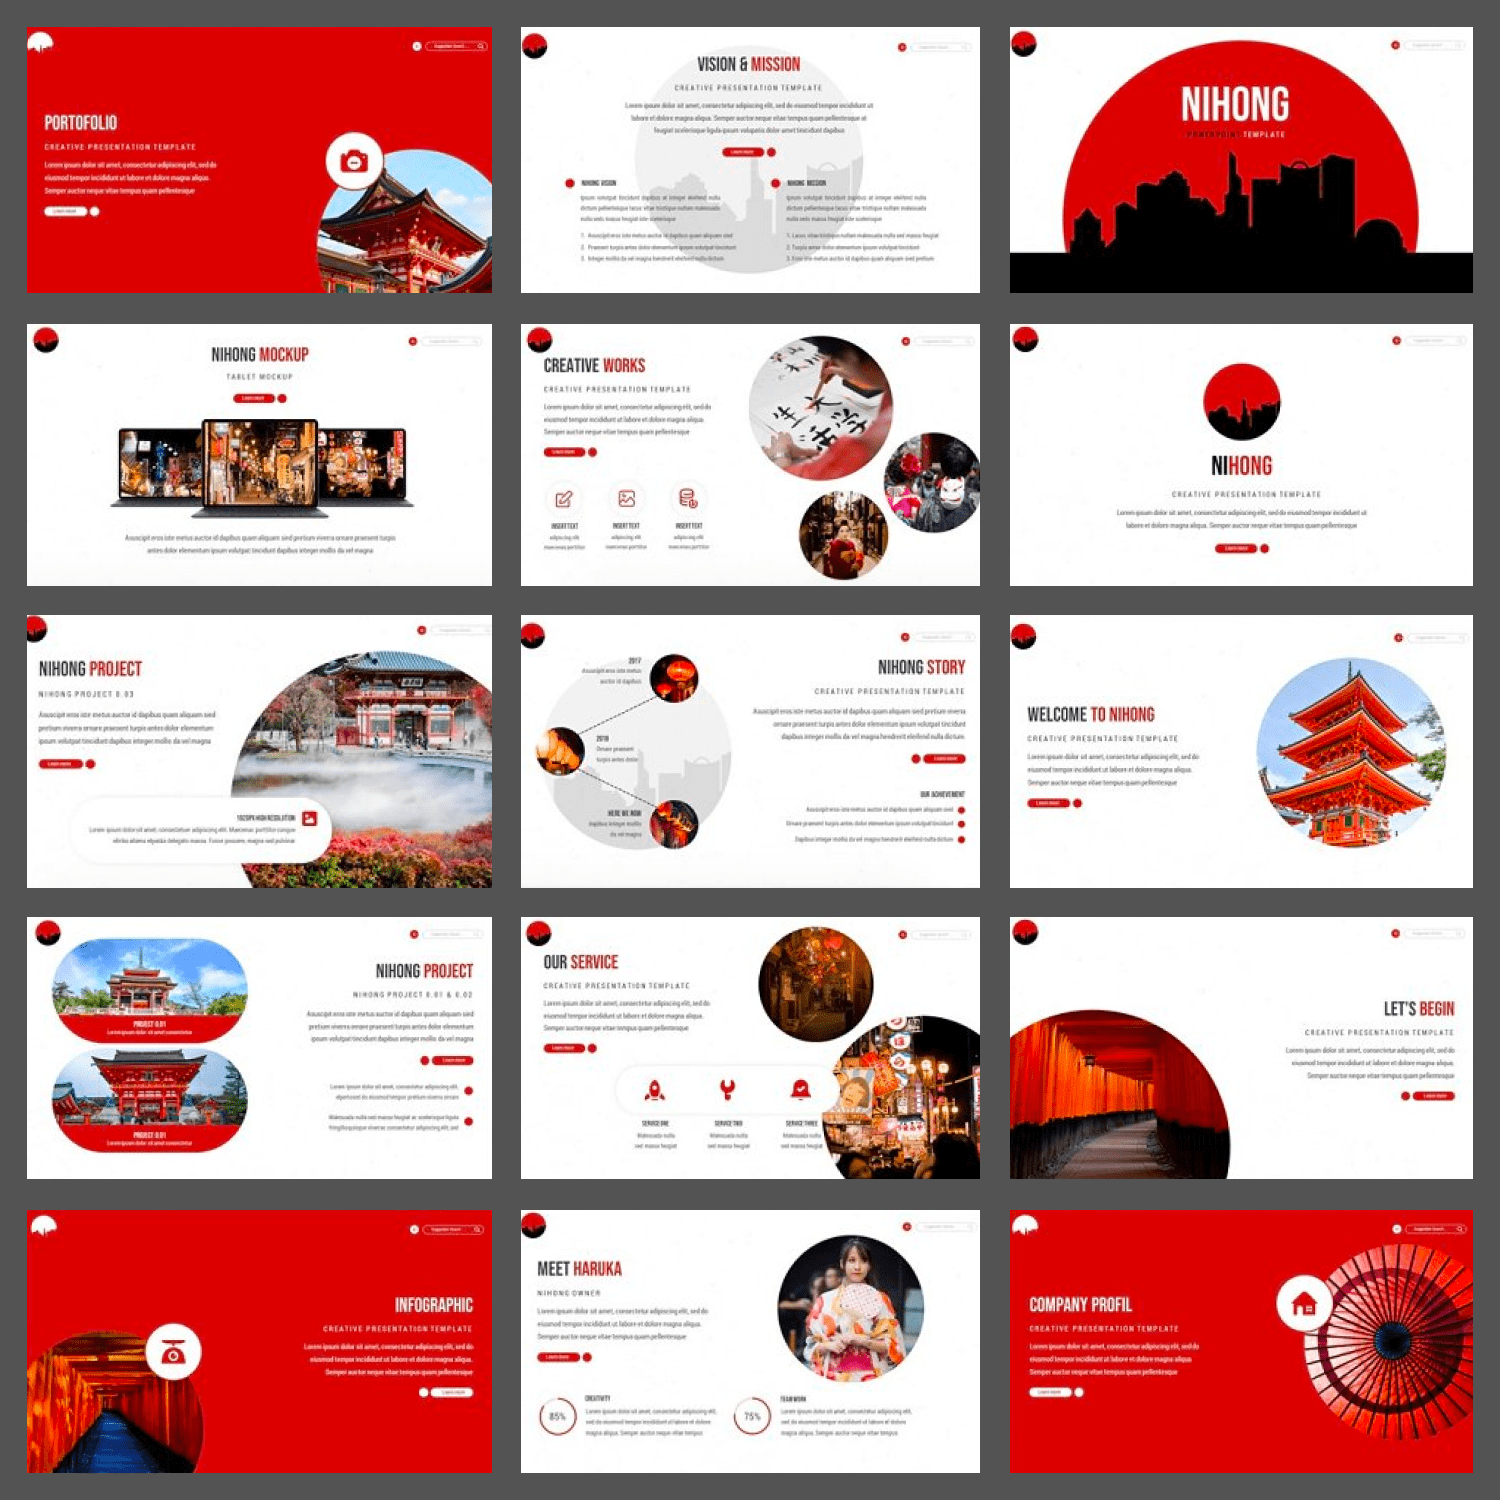 Nihong Powerpoint Template cover image.